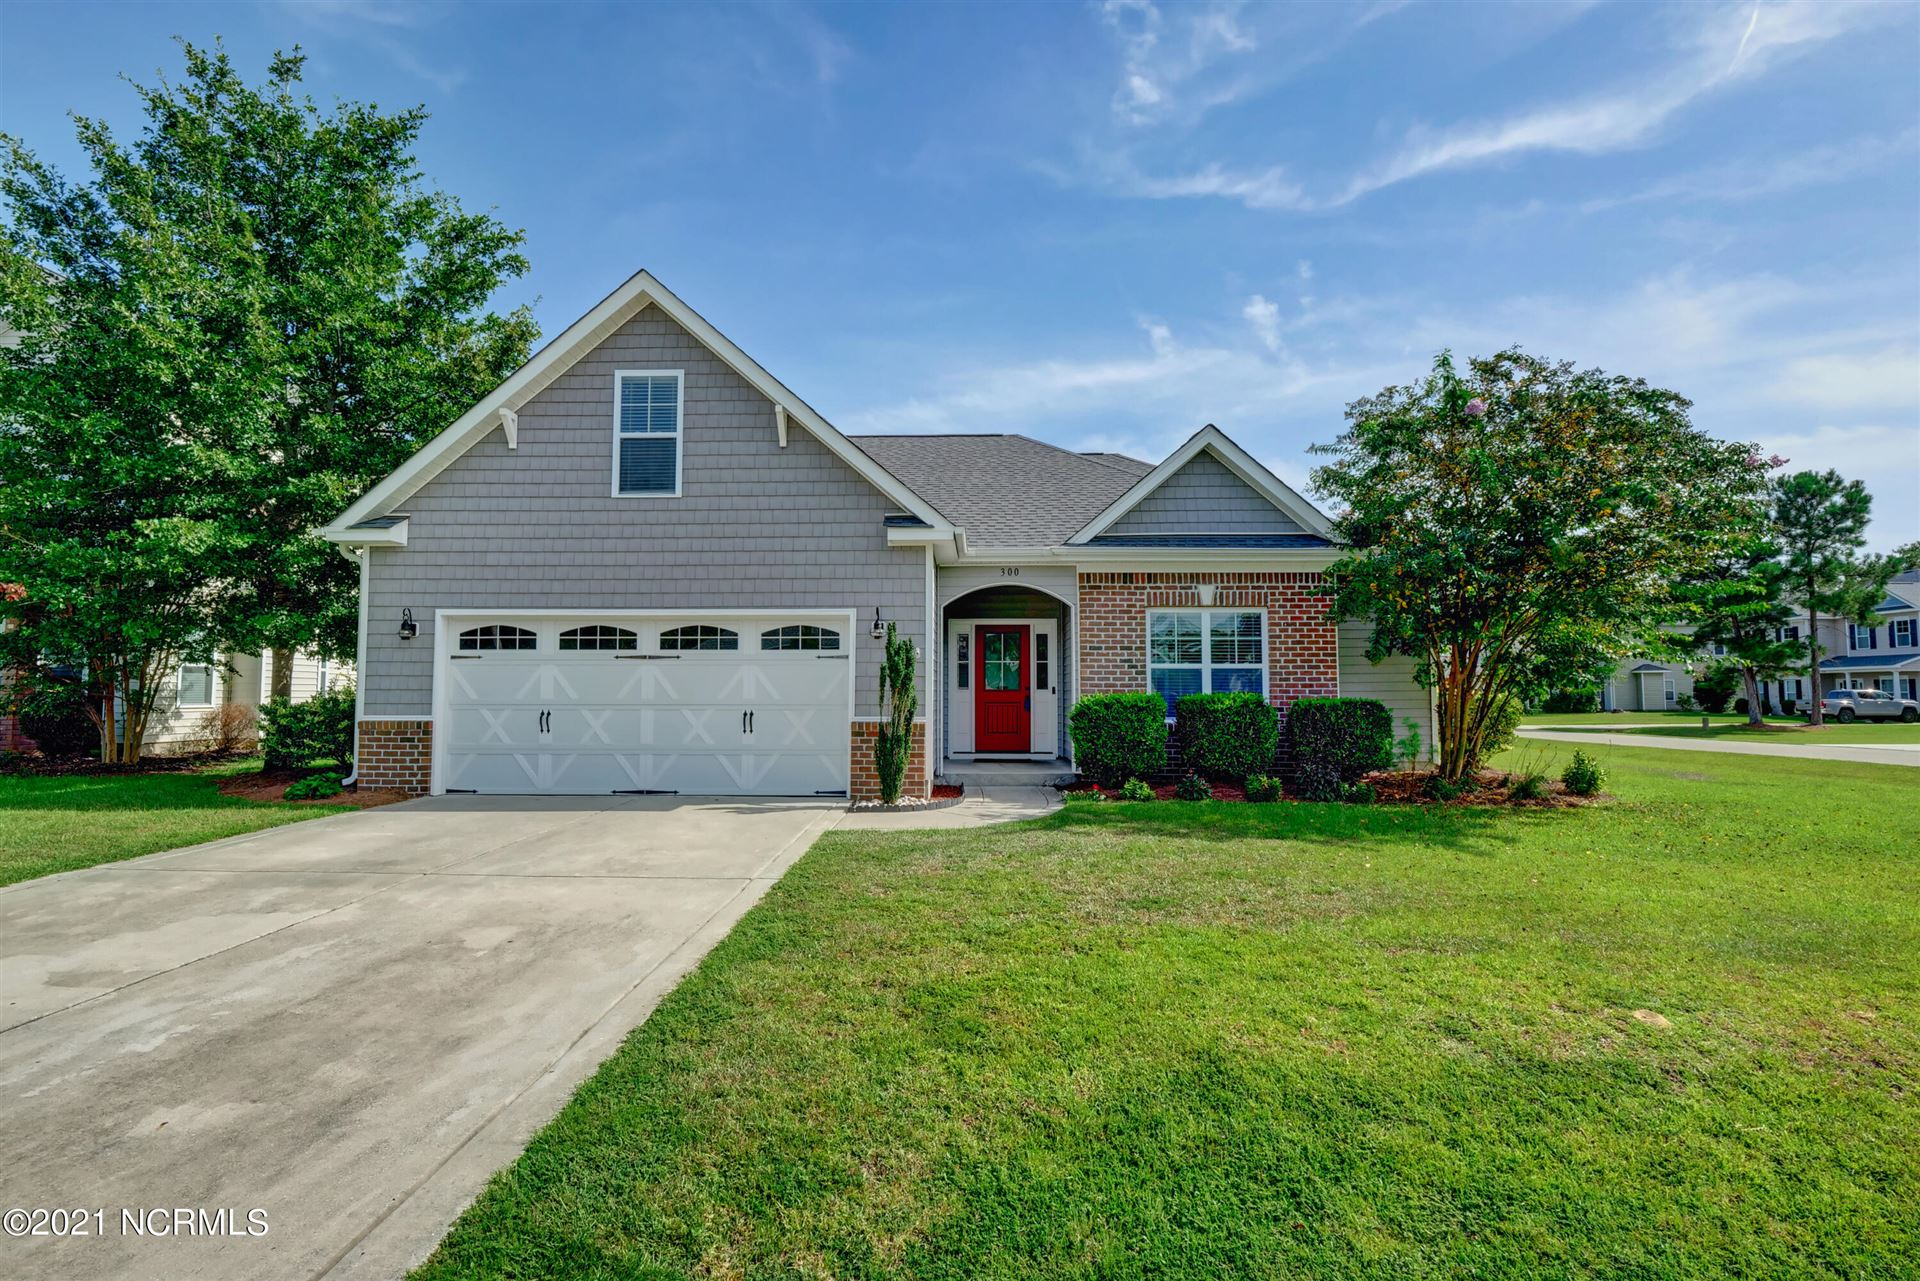 Photo of 300 Huxton Court, Sneads Ferry, NC 28460 (MLS # 100291191)